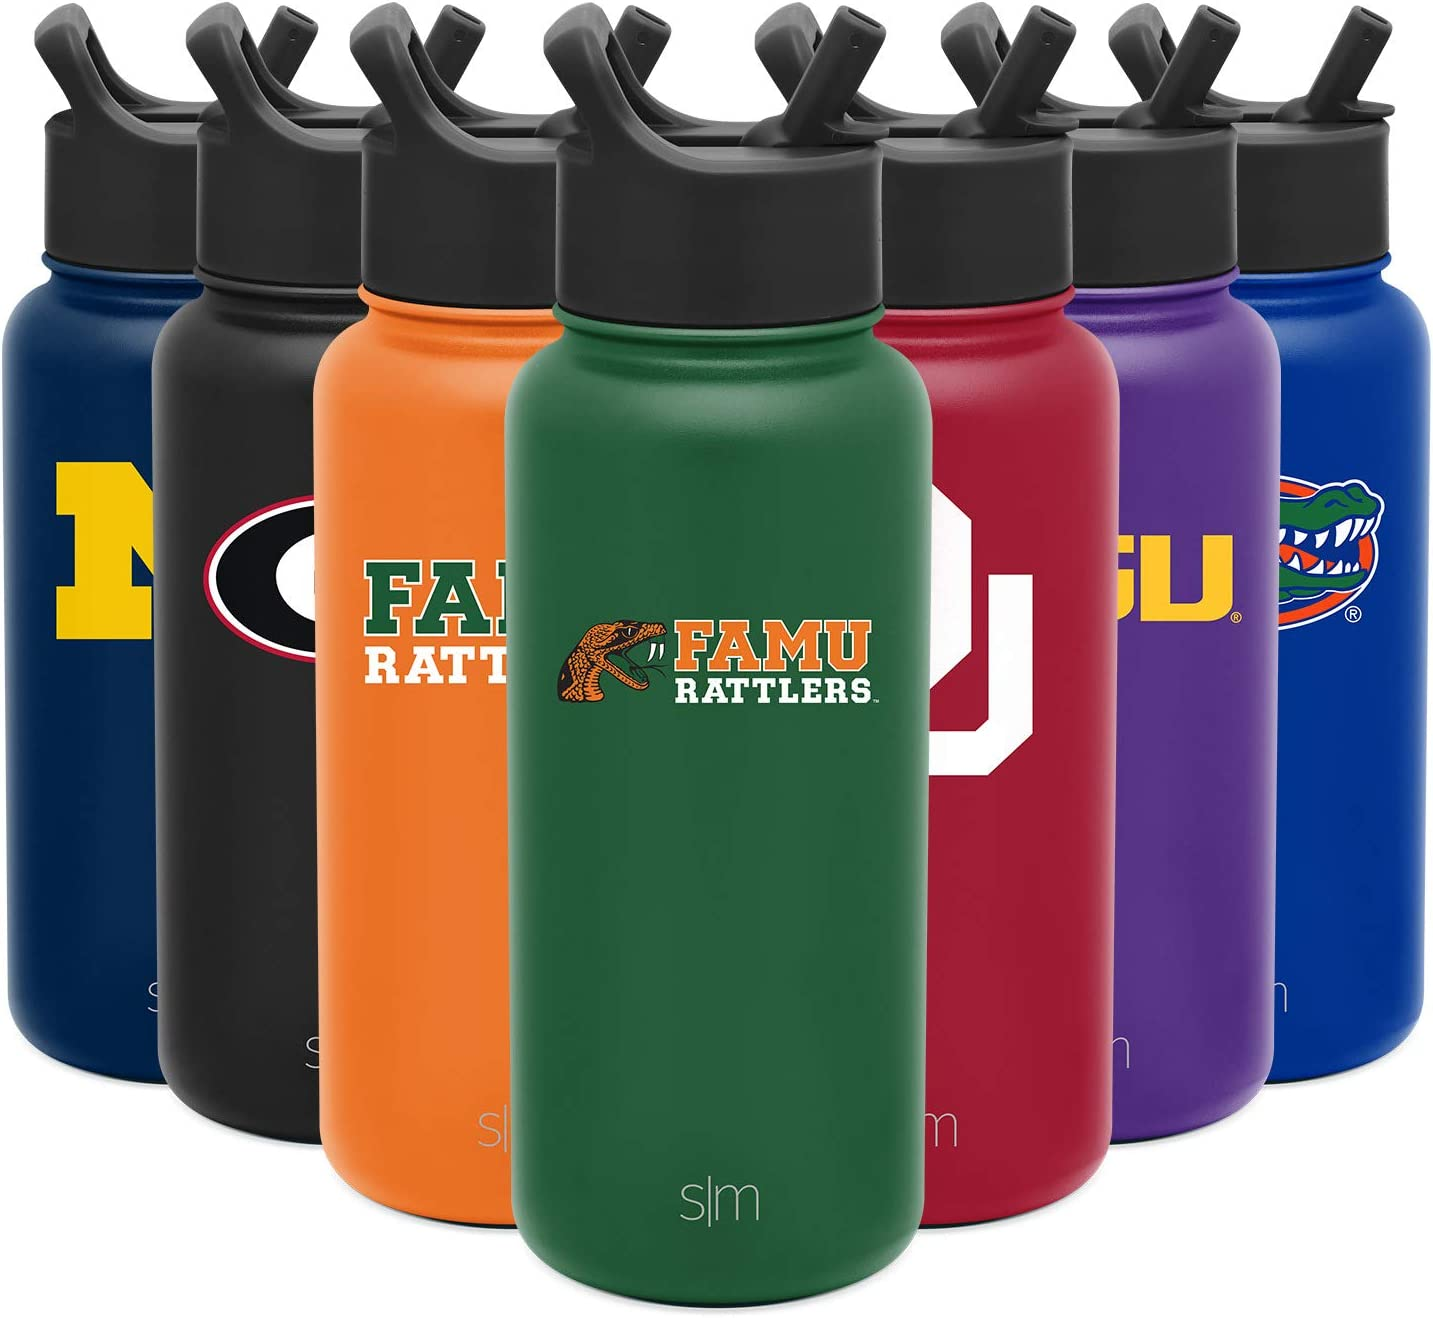 Gifts for Men Women Dads Simple Modern 32oz Summit Water Bottle with Straw Lid Leakproof Travel Tumbler Stainless Steel Florida A/&M Rattlers